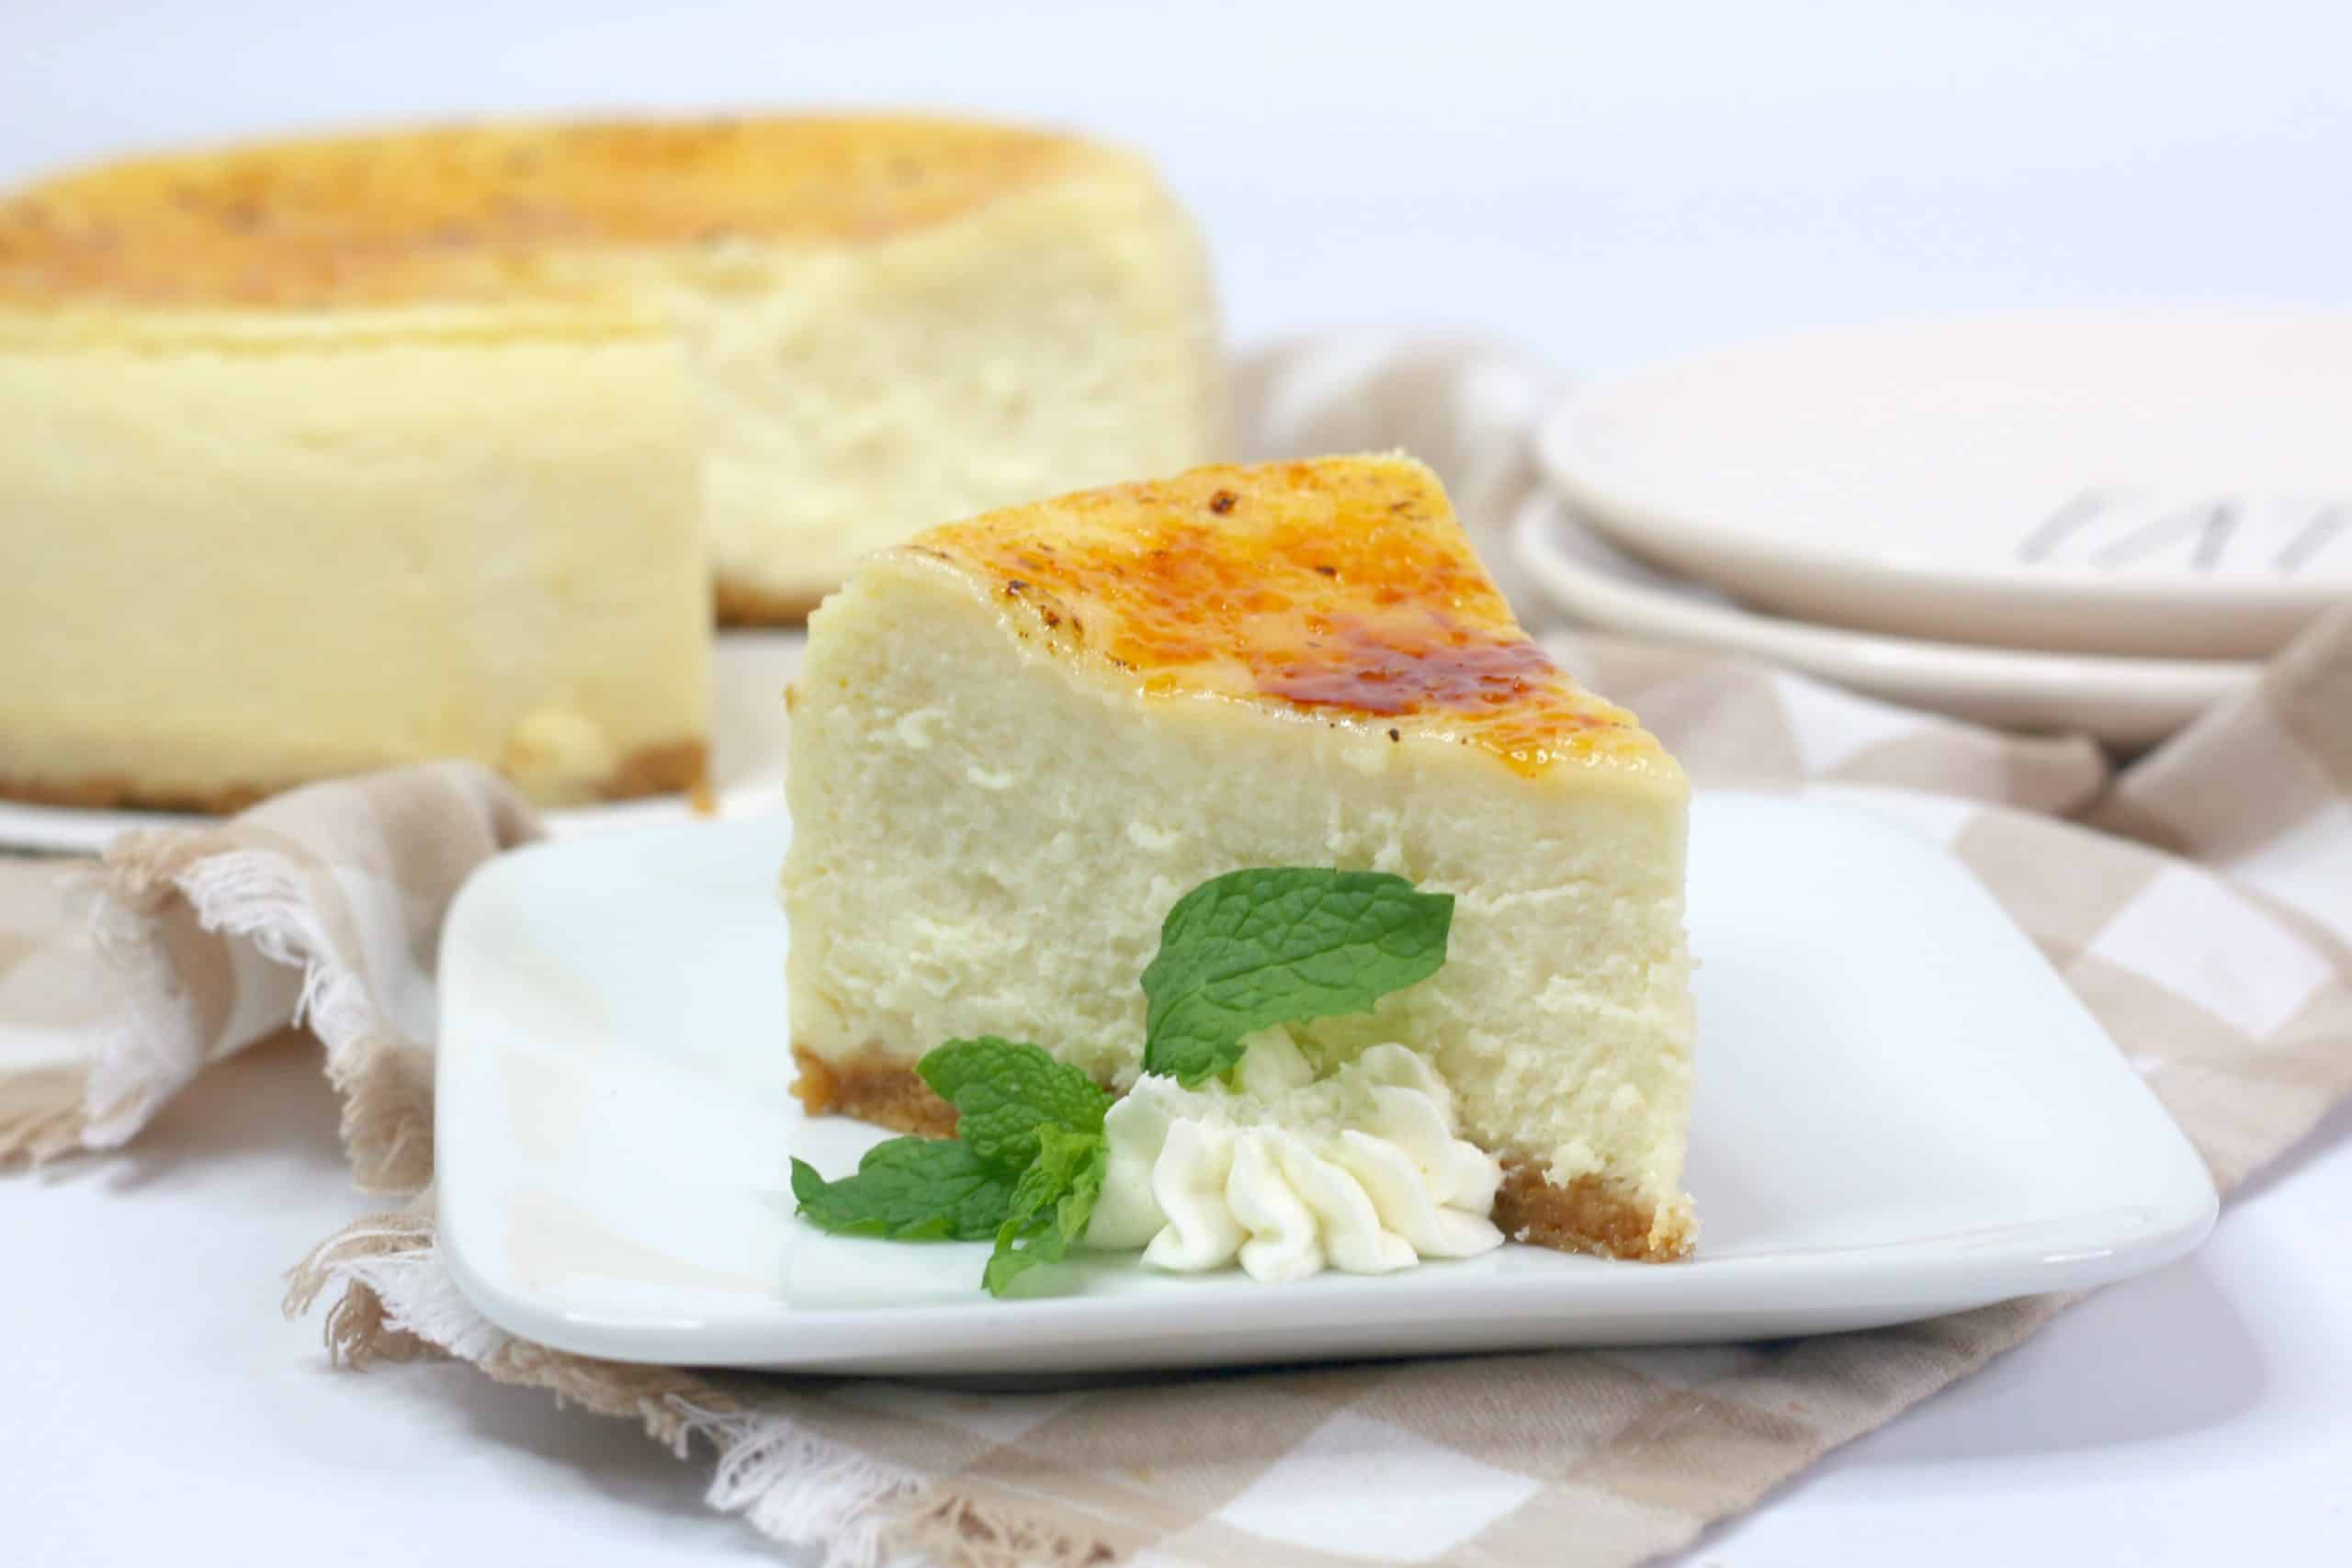 slice of Creme Brulee Cheesecake